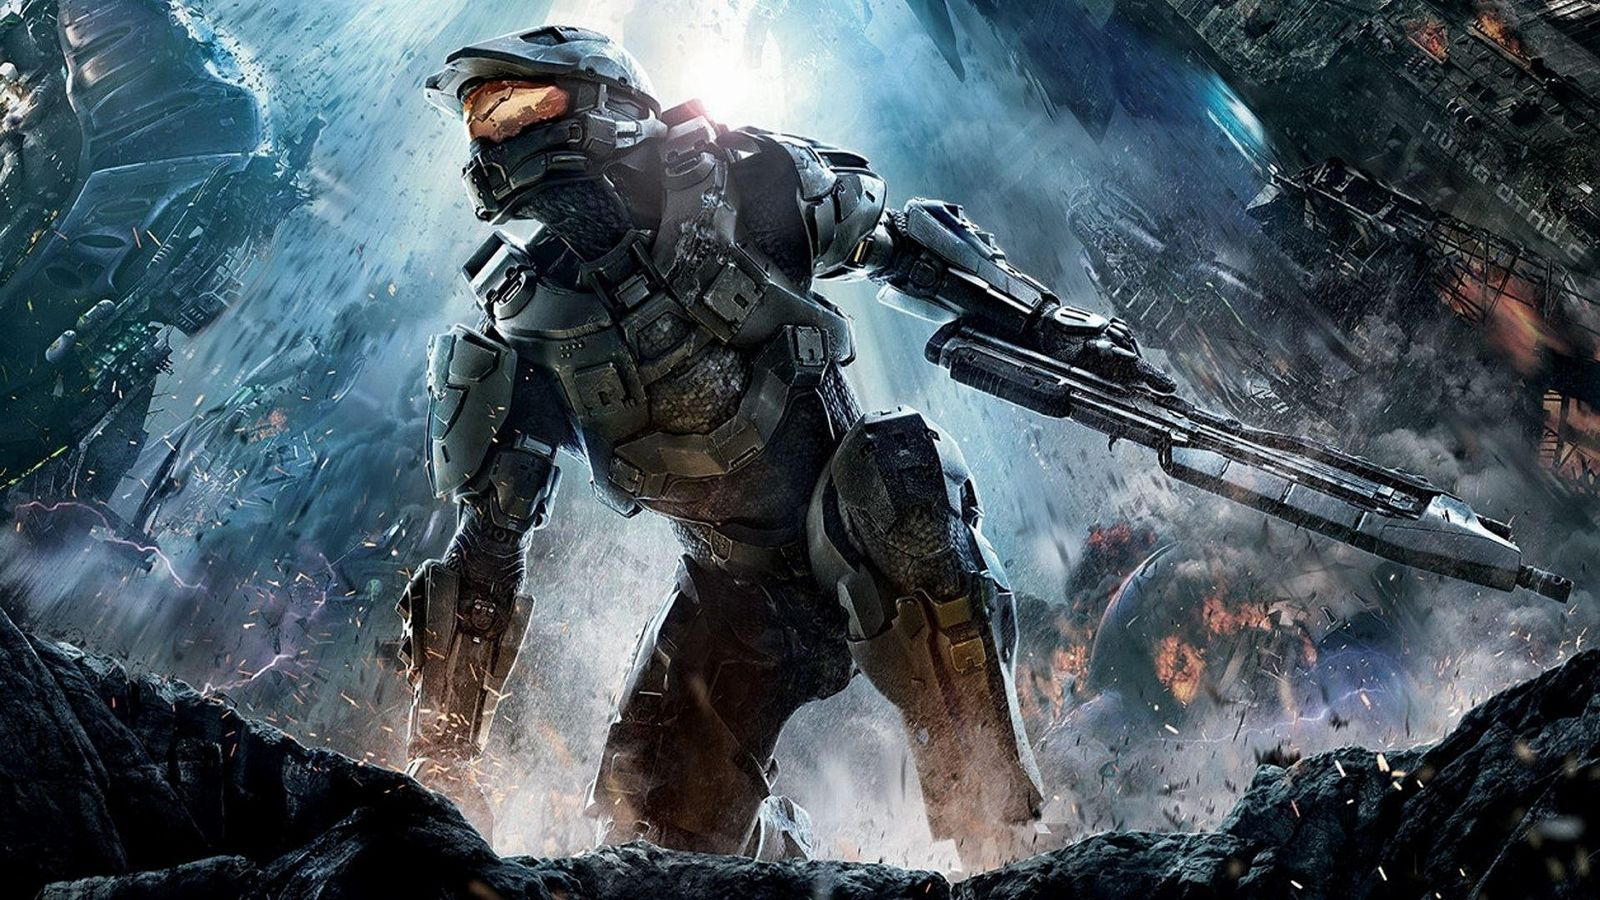 halo new wallpaper hd